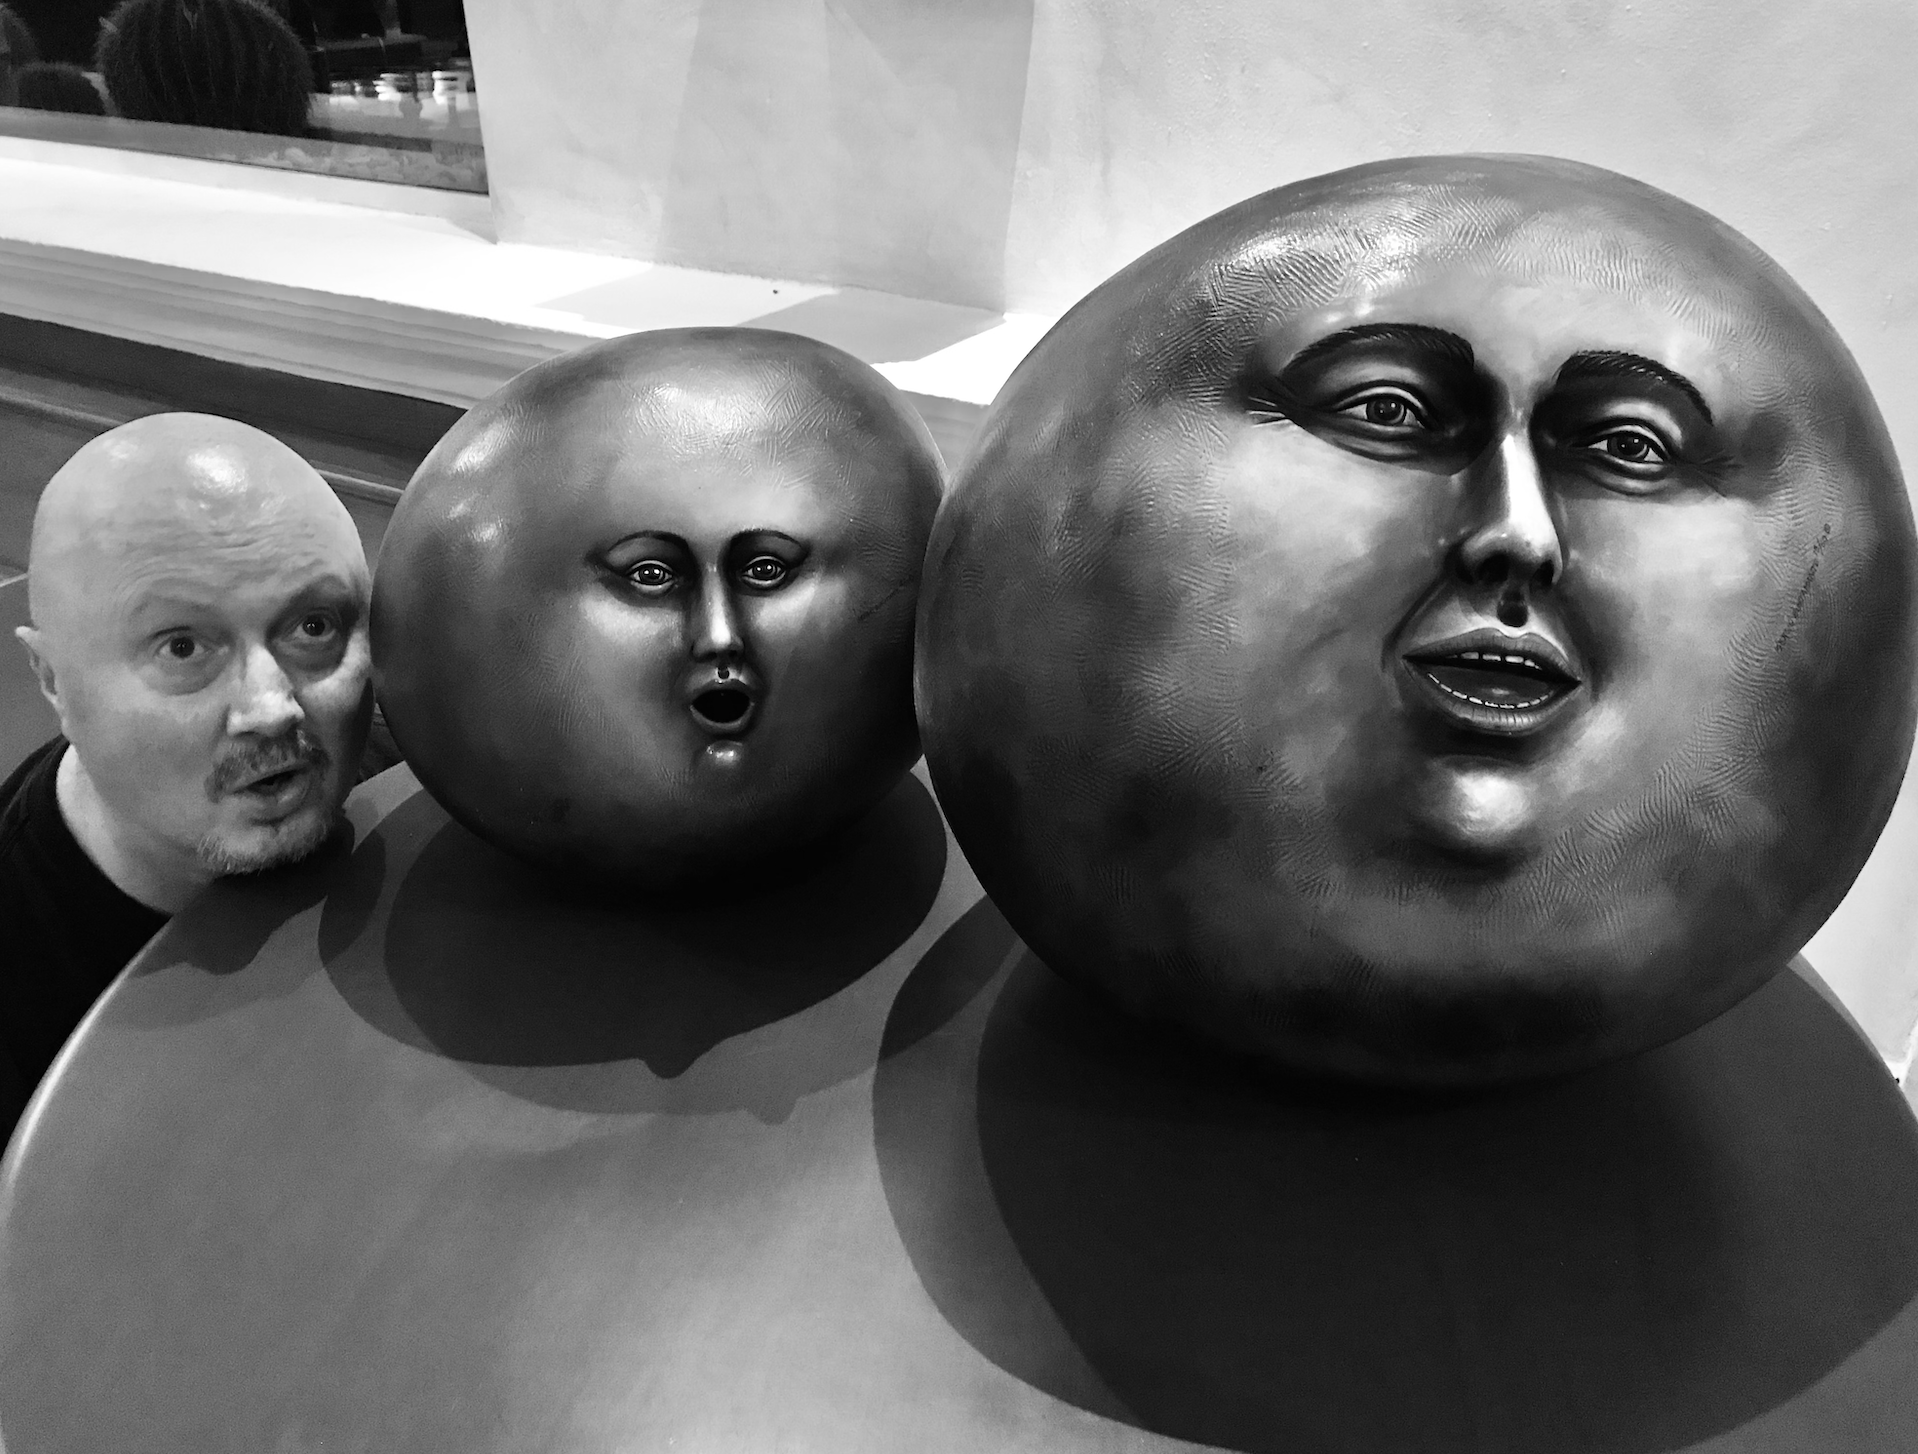 Me (with my bald head) in a black t-shirt bending down beside an end table with two different sized round balls with faces on them (modern art) in the main lobby at the Excellence Riviera Maya, Cancun, Mexico.